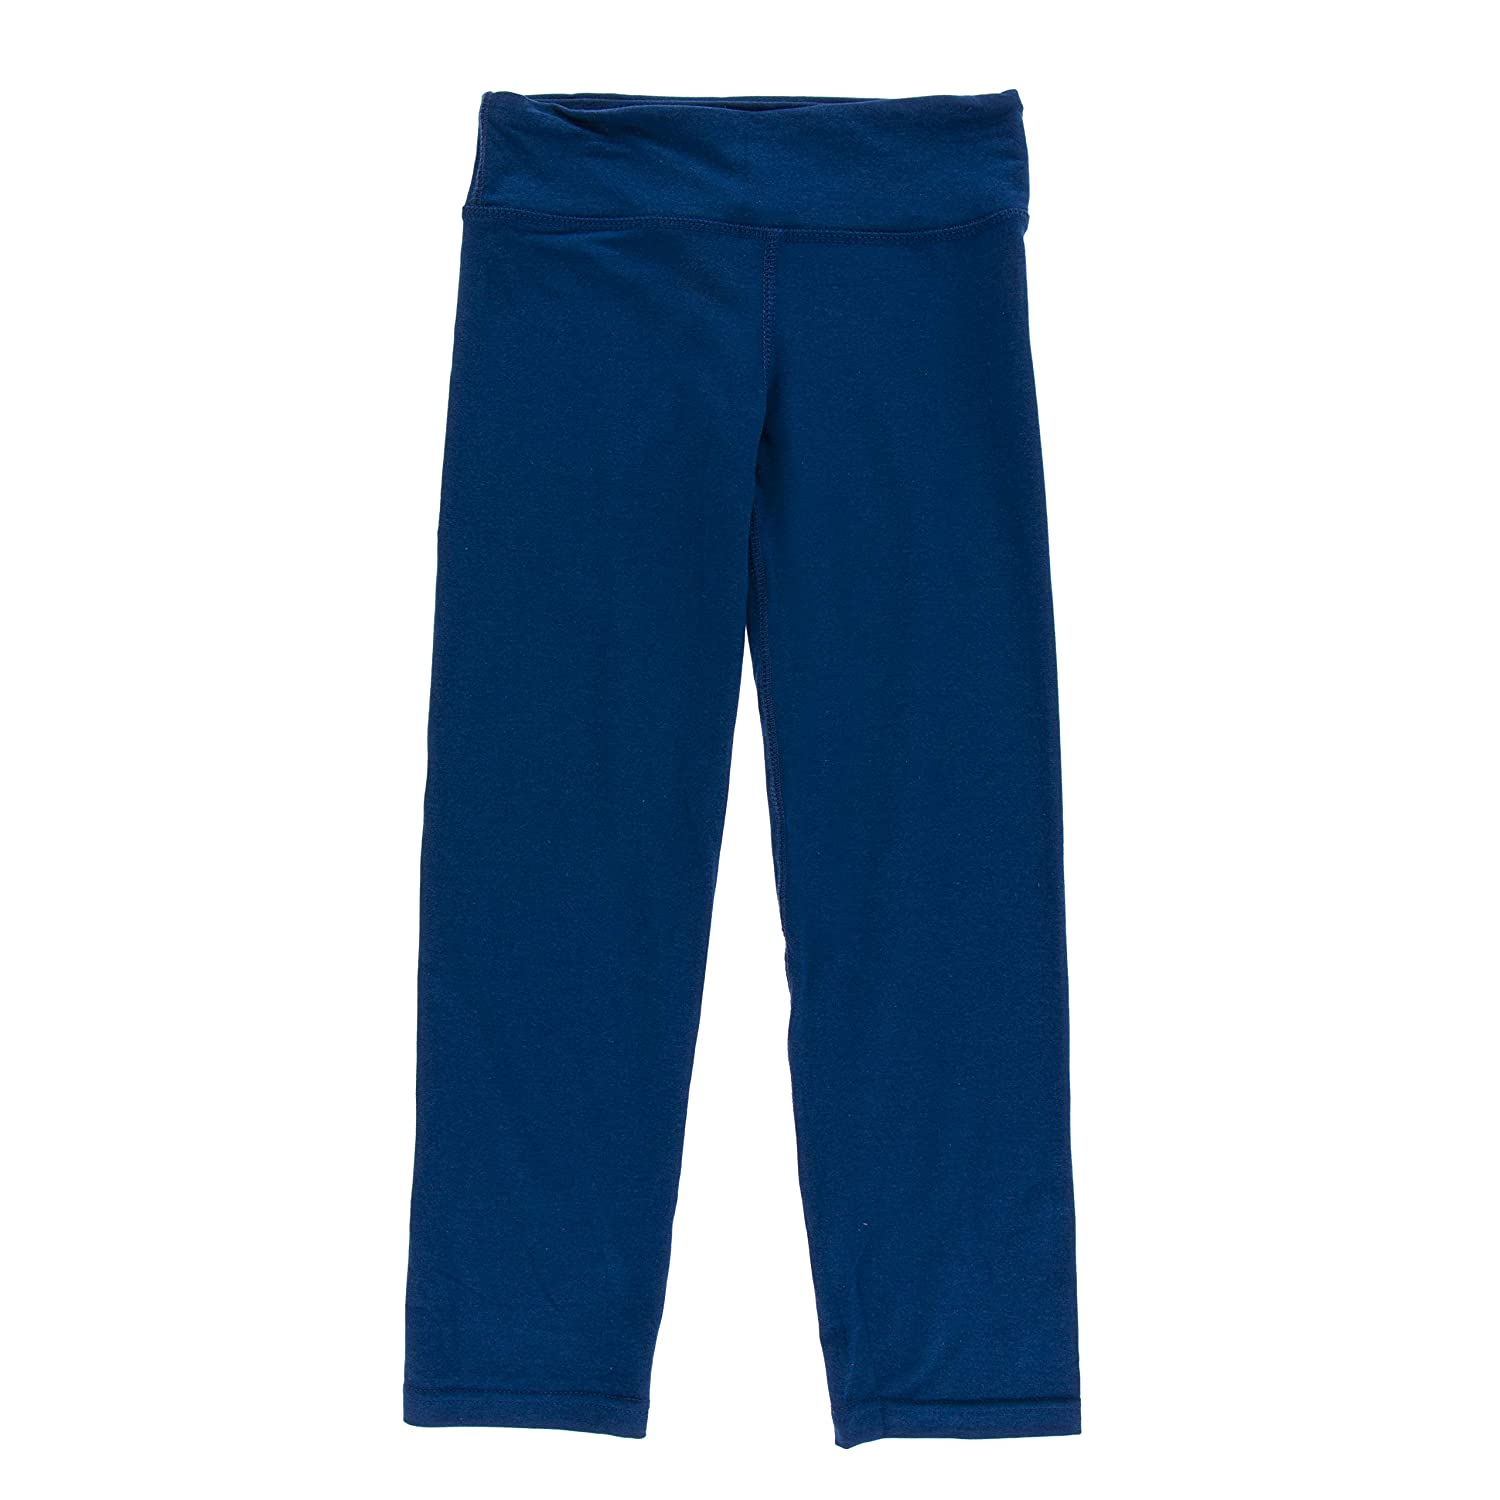 S-6//8 KicKee Pants Solid Performance Jersey Pant in Navy